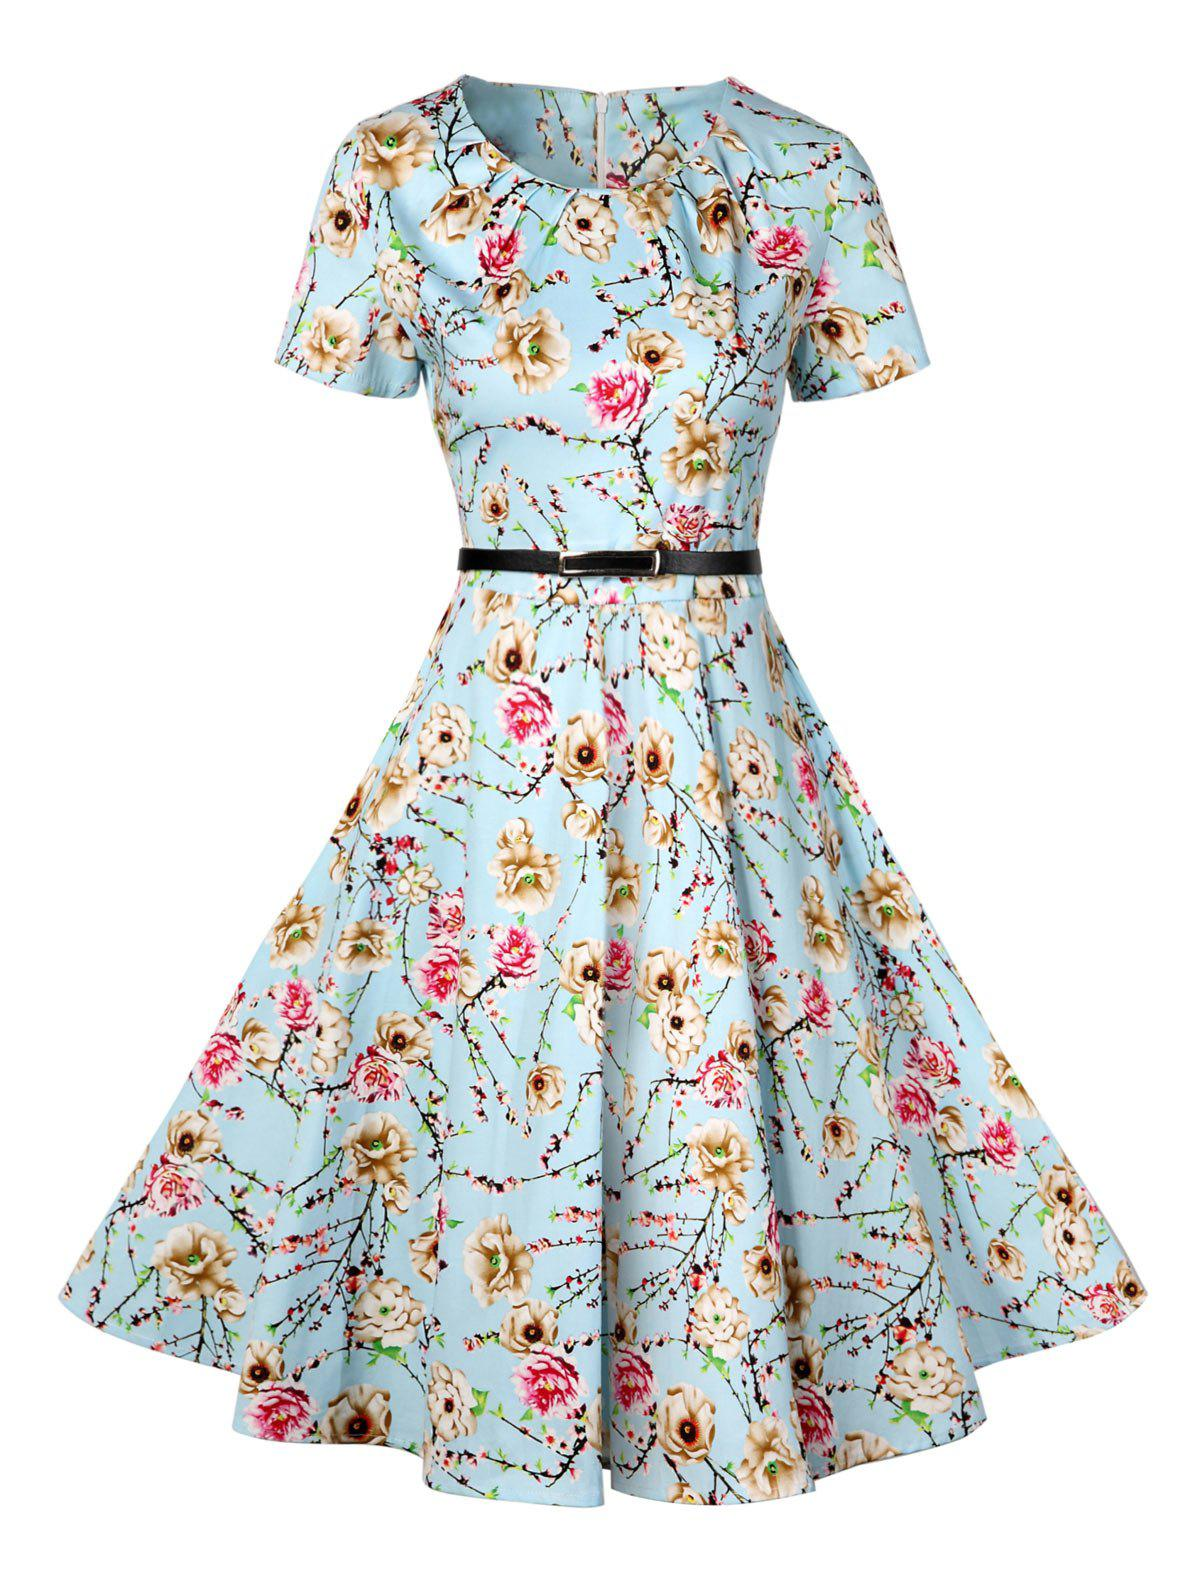 Retro Pin Up Dress - Azur XL